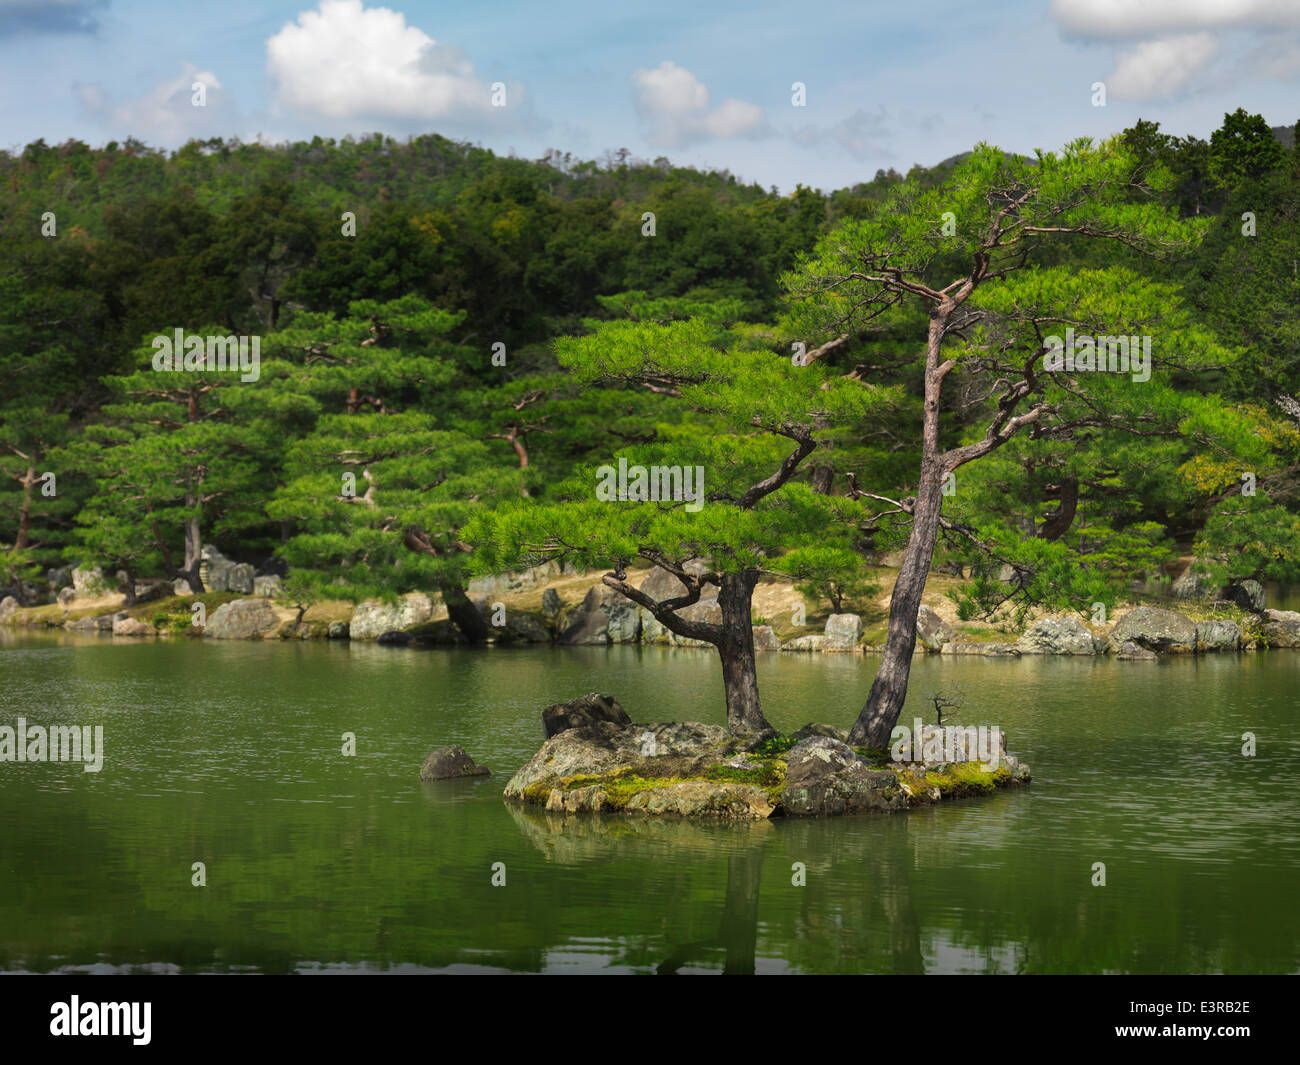 Pine trees at Japanese garden in Kyoto, Japan - Stock Image